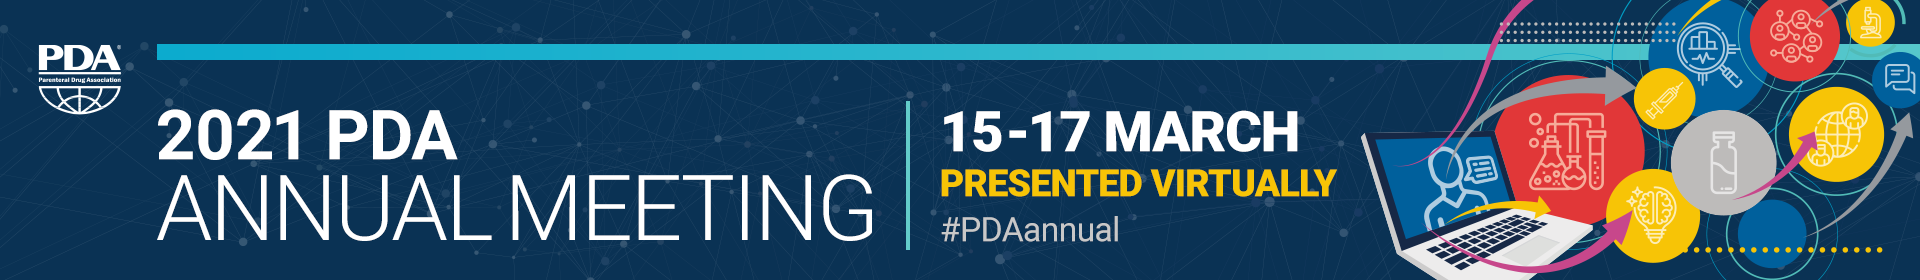 2021 PDA Annual Meeting Event Banner